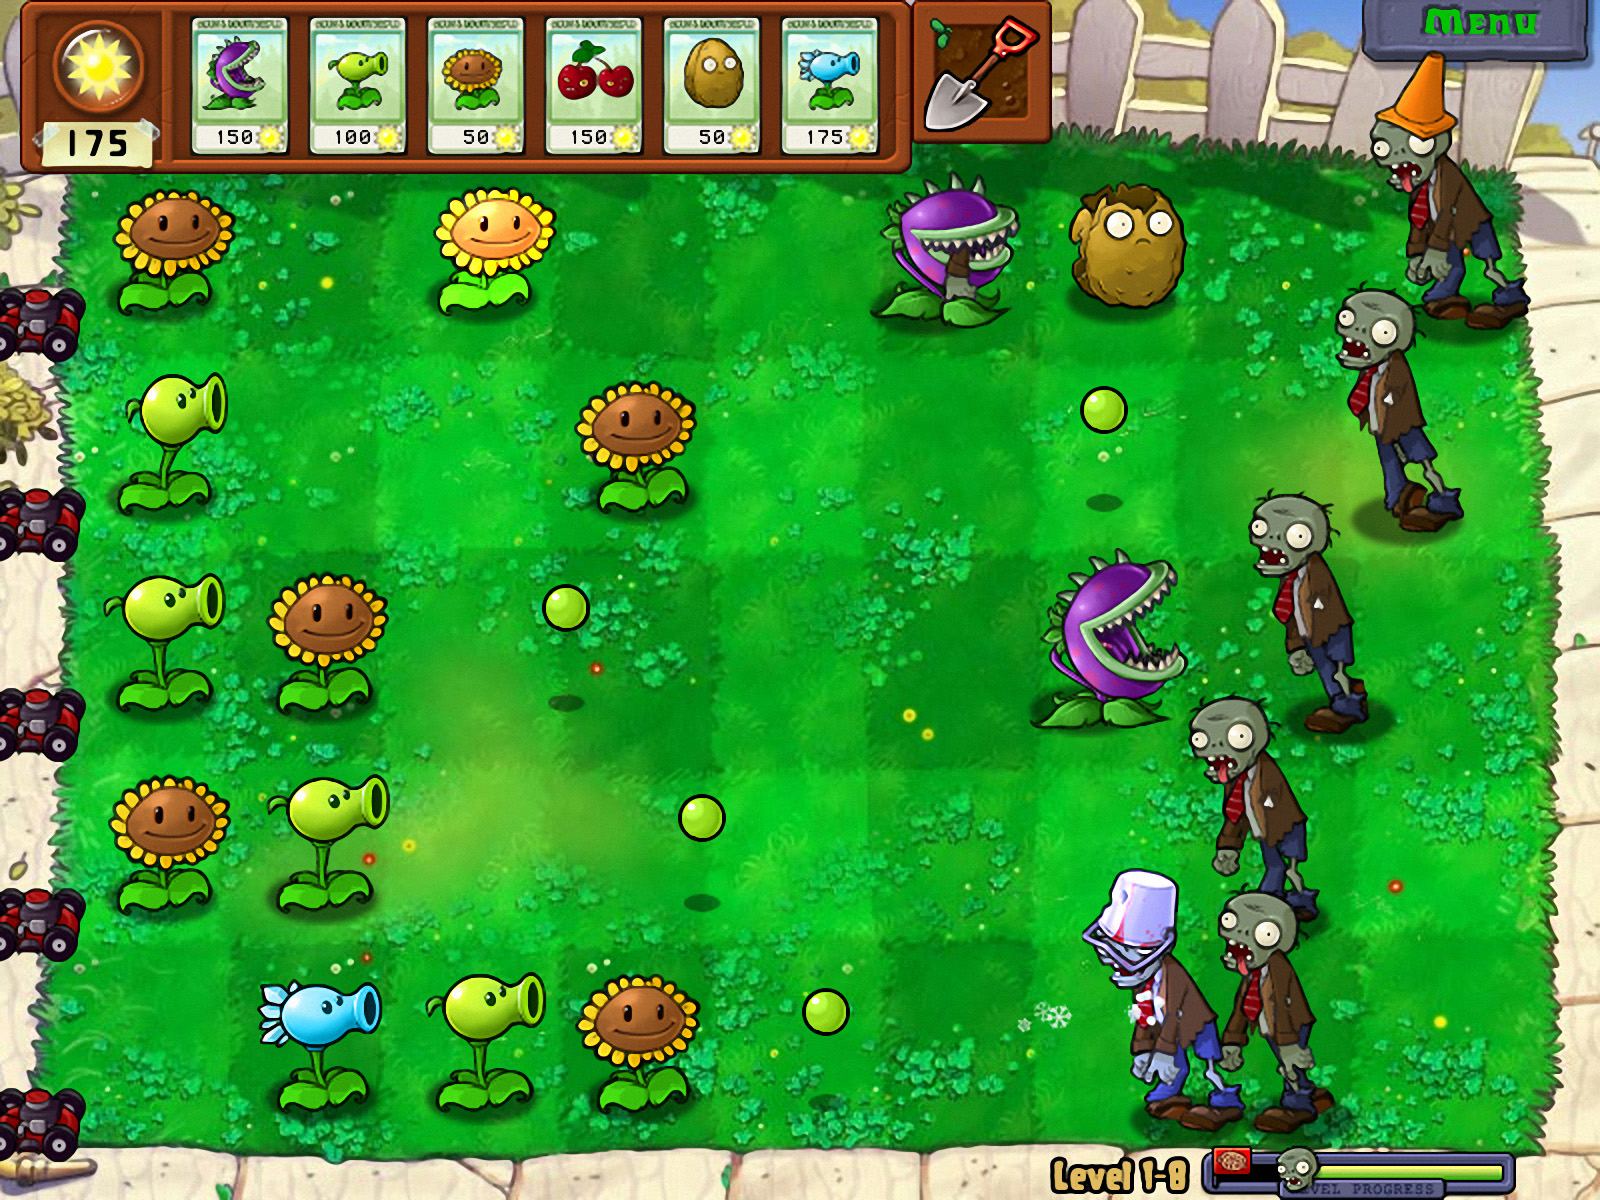 Not Your Usual Time Wasters: Plants vs. Zombies and Final Fantasy for the iPhone